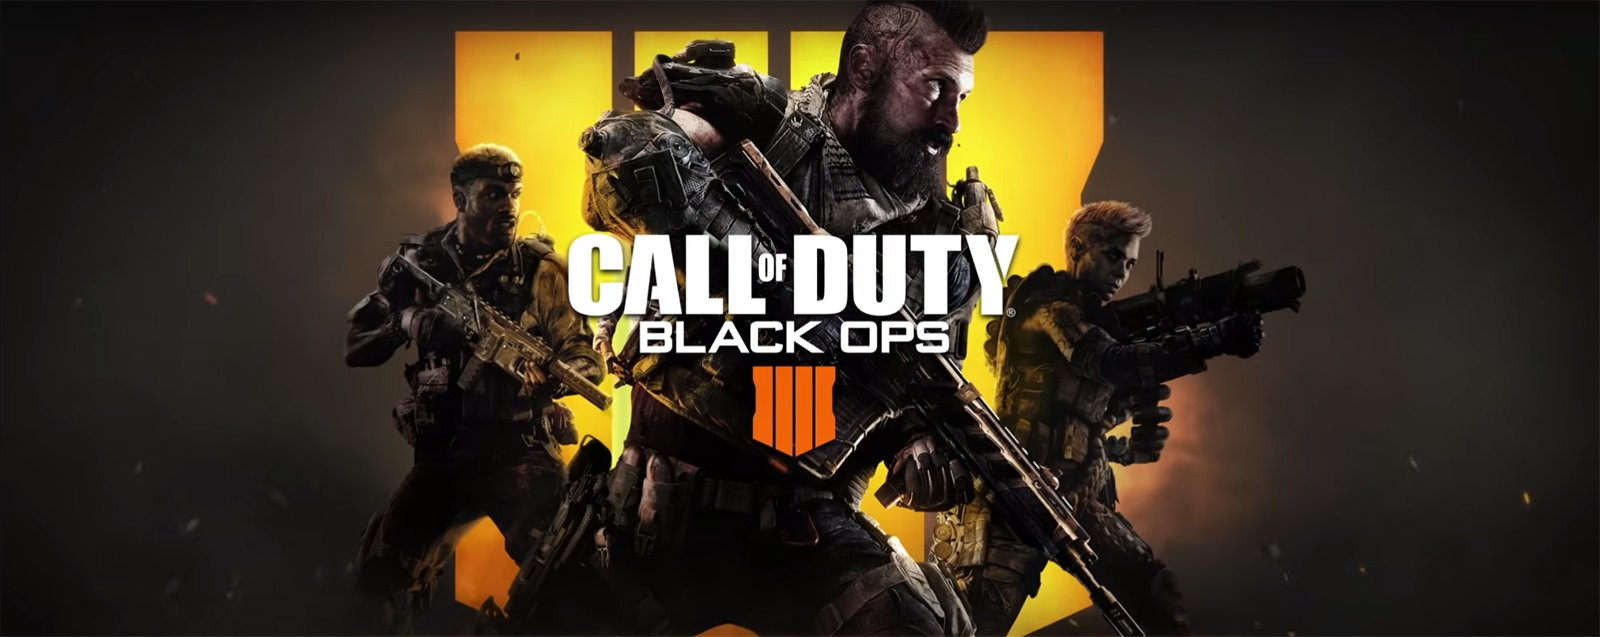 Black Ops 4 Multiplayer